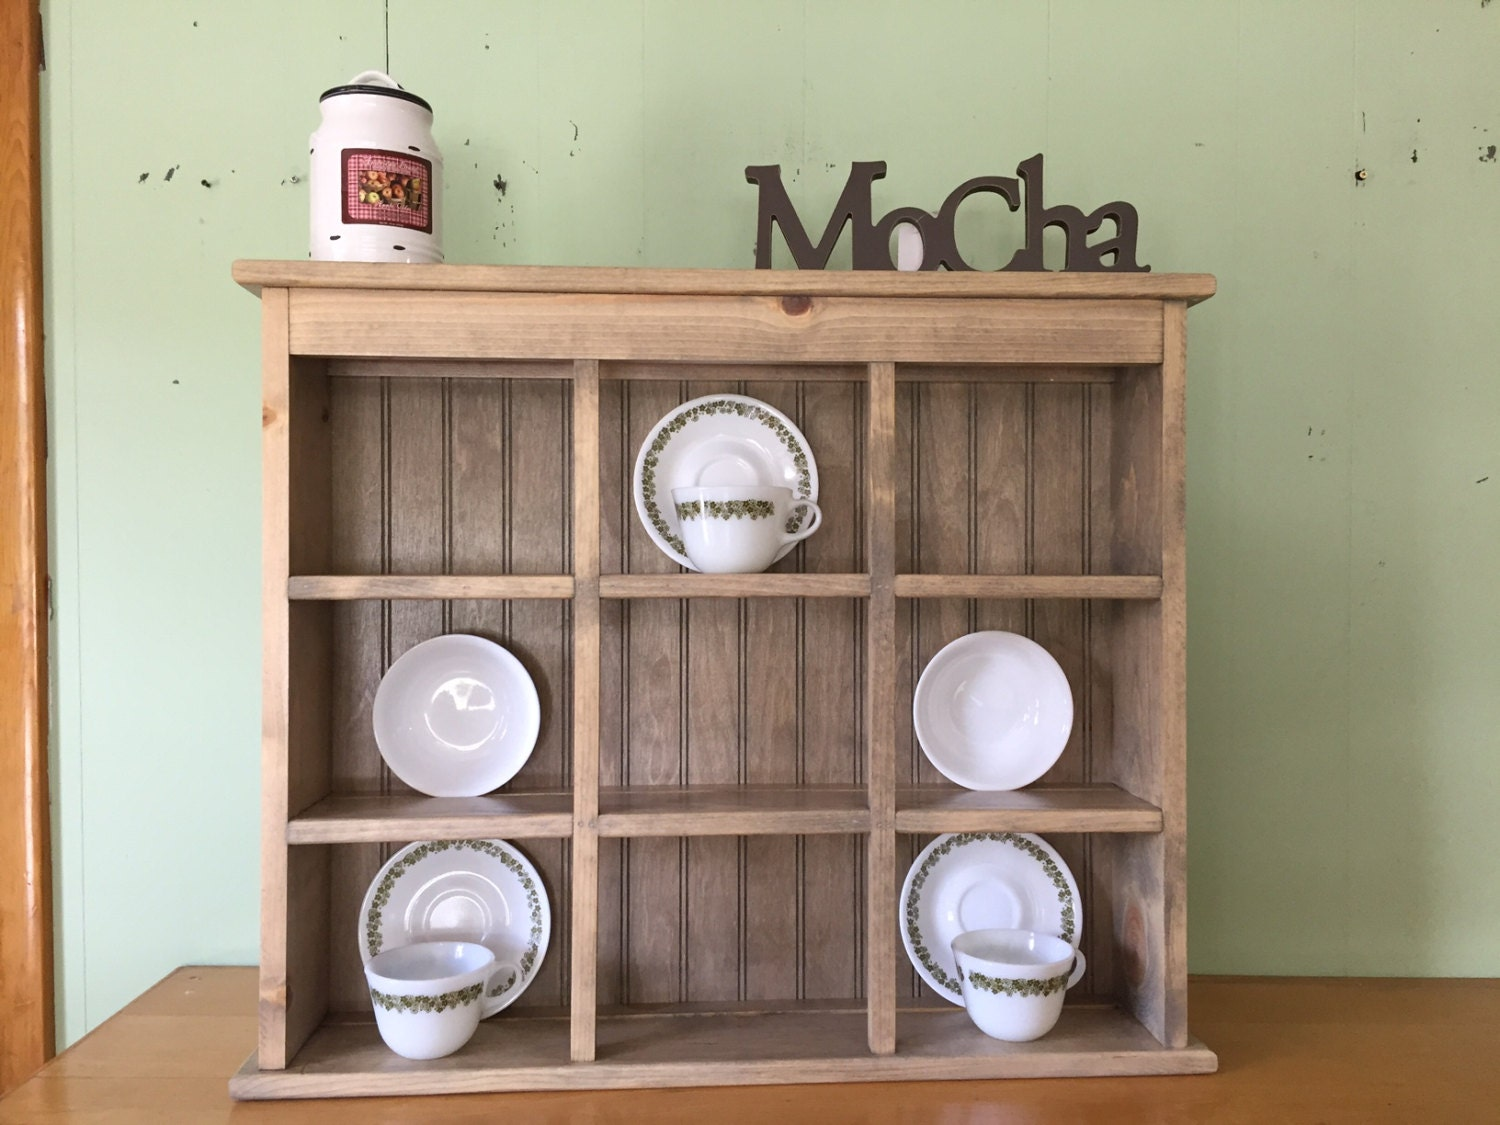 Tea Cup And Saucer Plate Rack And Kitchen Display Shelf 9